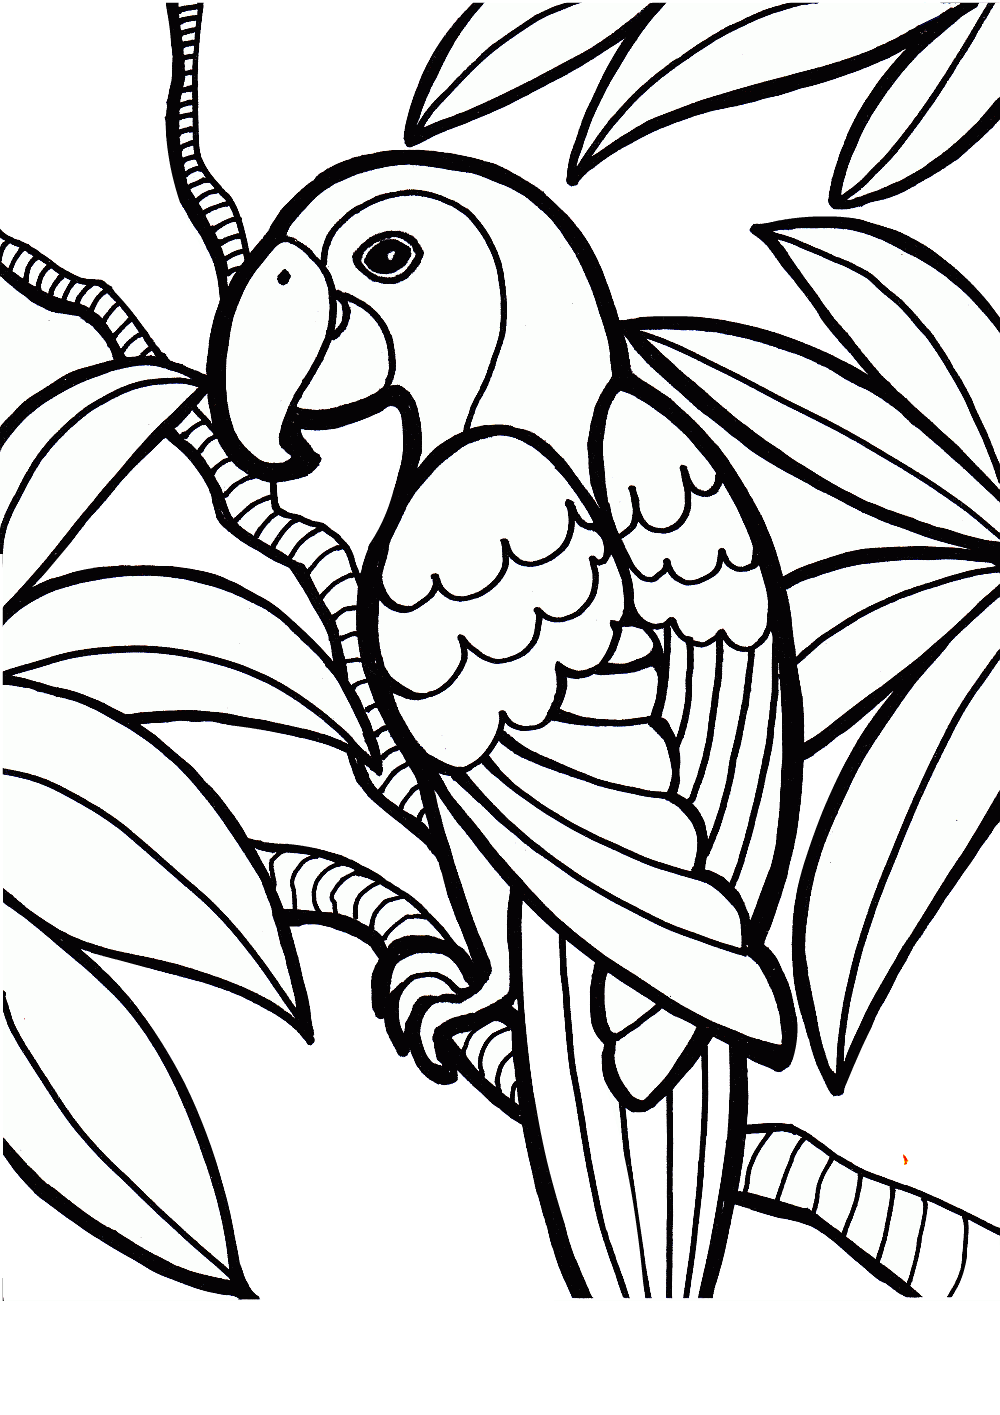 Bird Coloring Pages Printable in 2020 | Bird coloring pages, Bird ... | 1415x1000